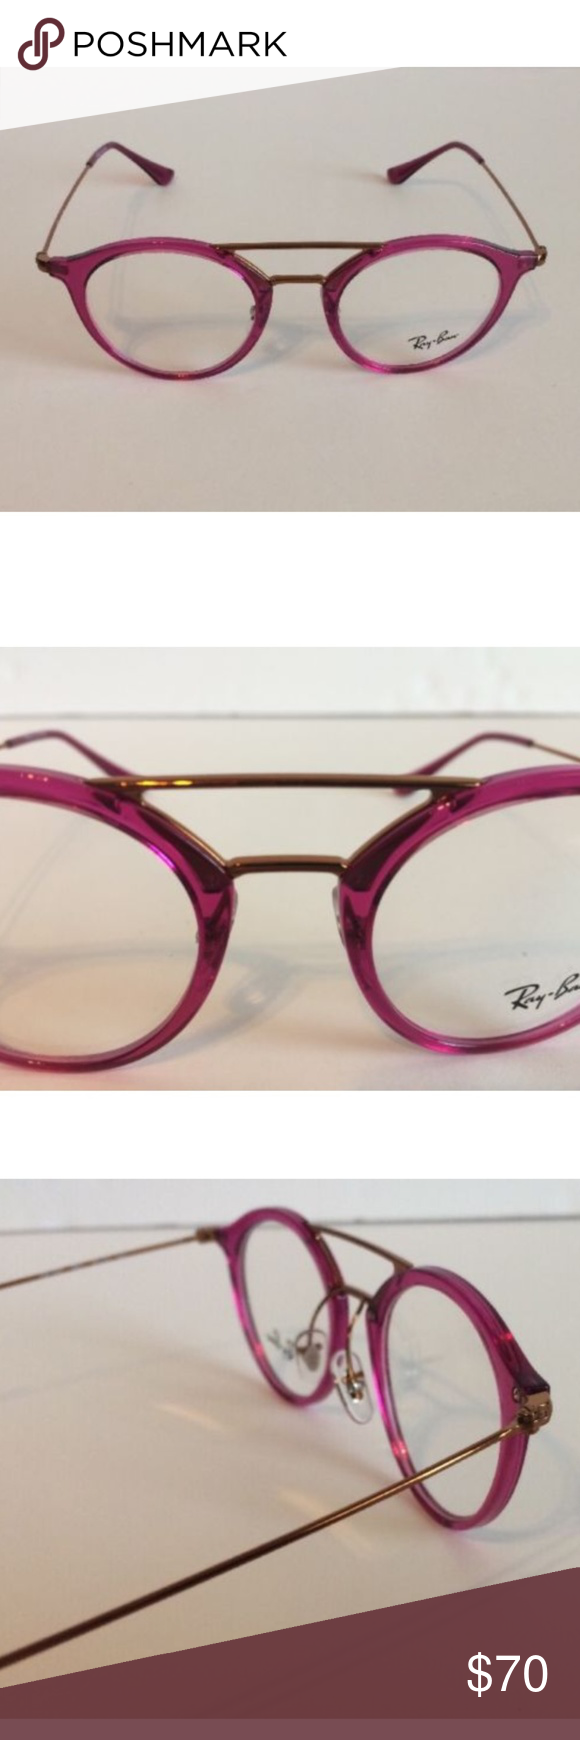 cf60c721e7 Ray-Ban Pink Fuschia Round Eyeglasses RB 7097 5631 NEW AUTHENTIC Ray-Ban RB